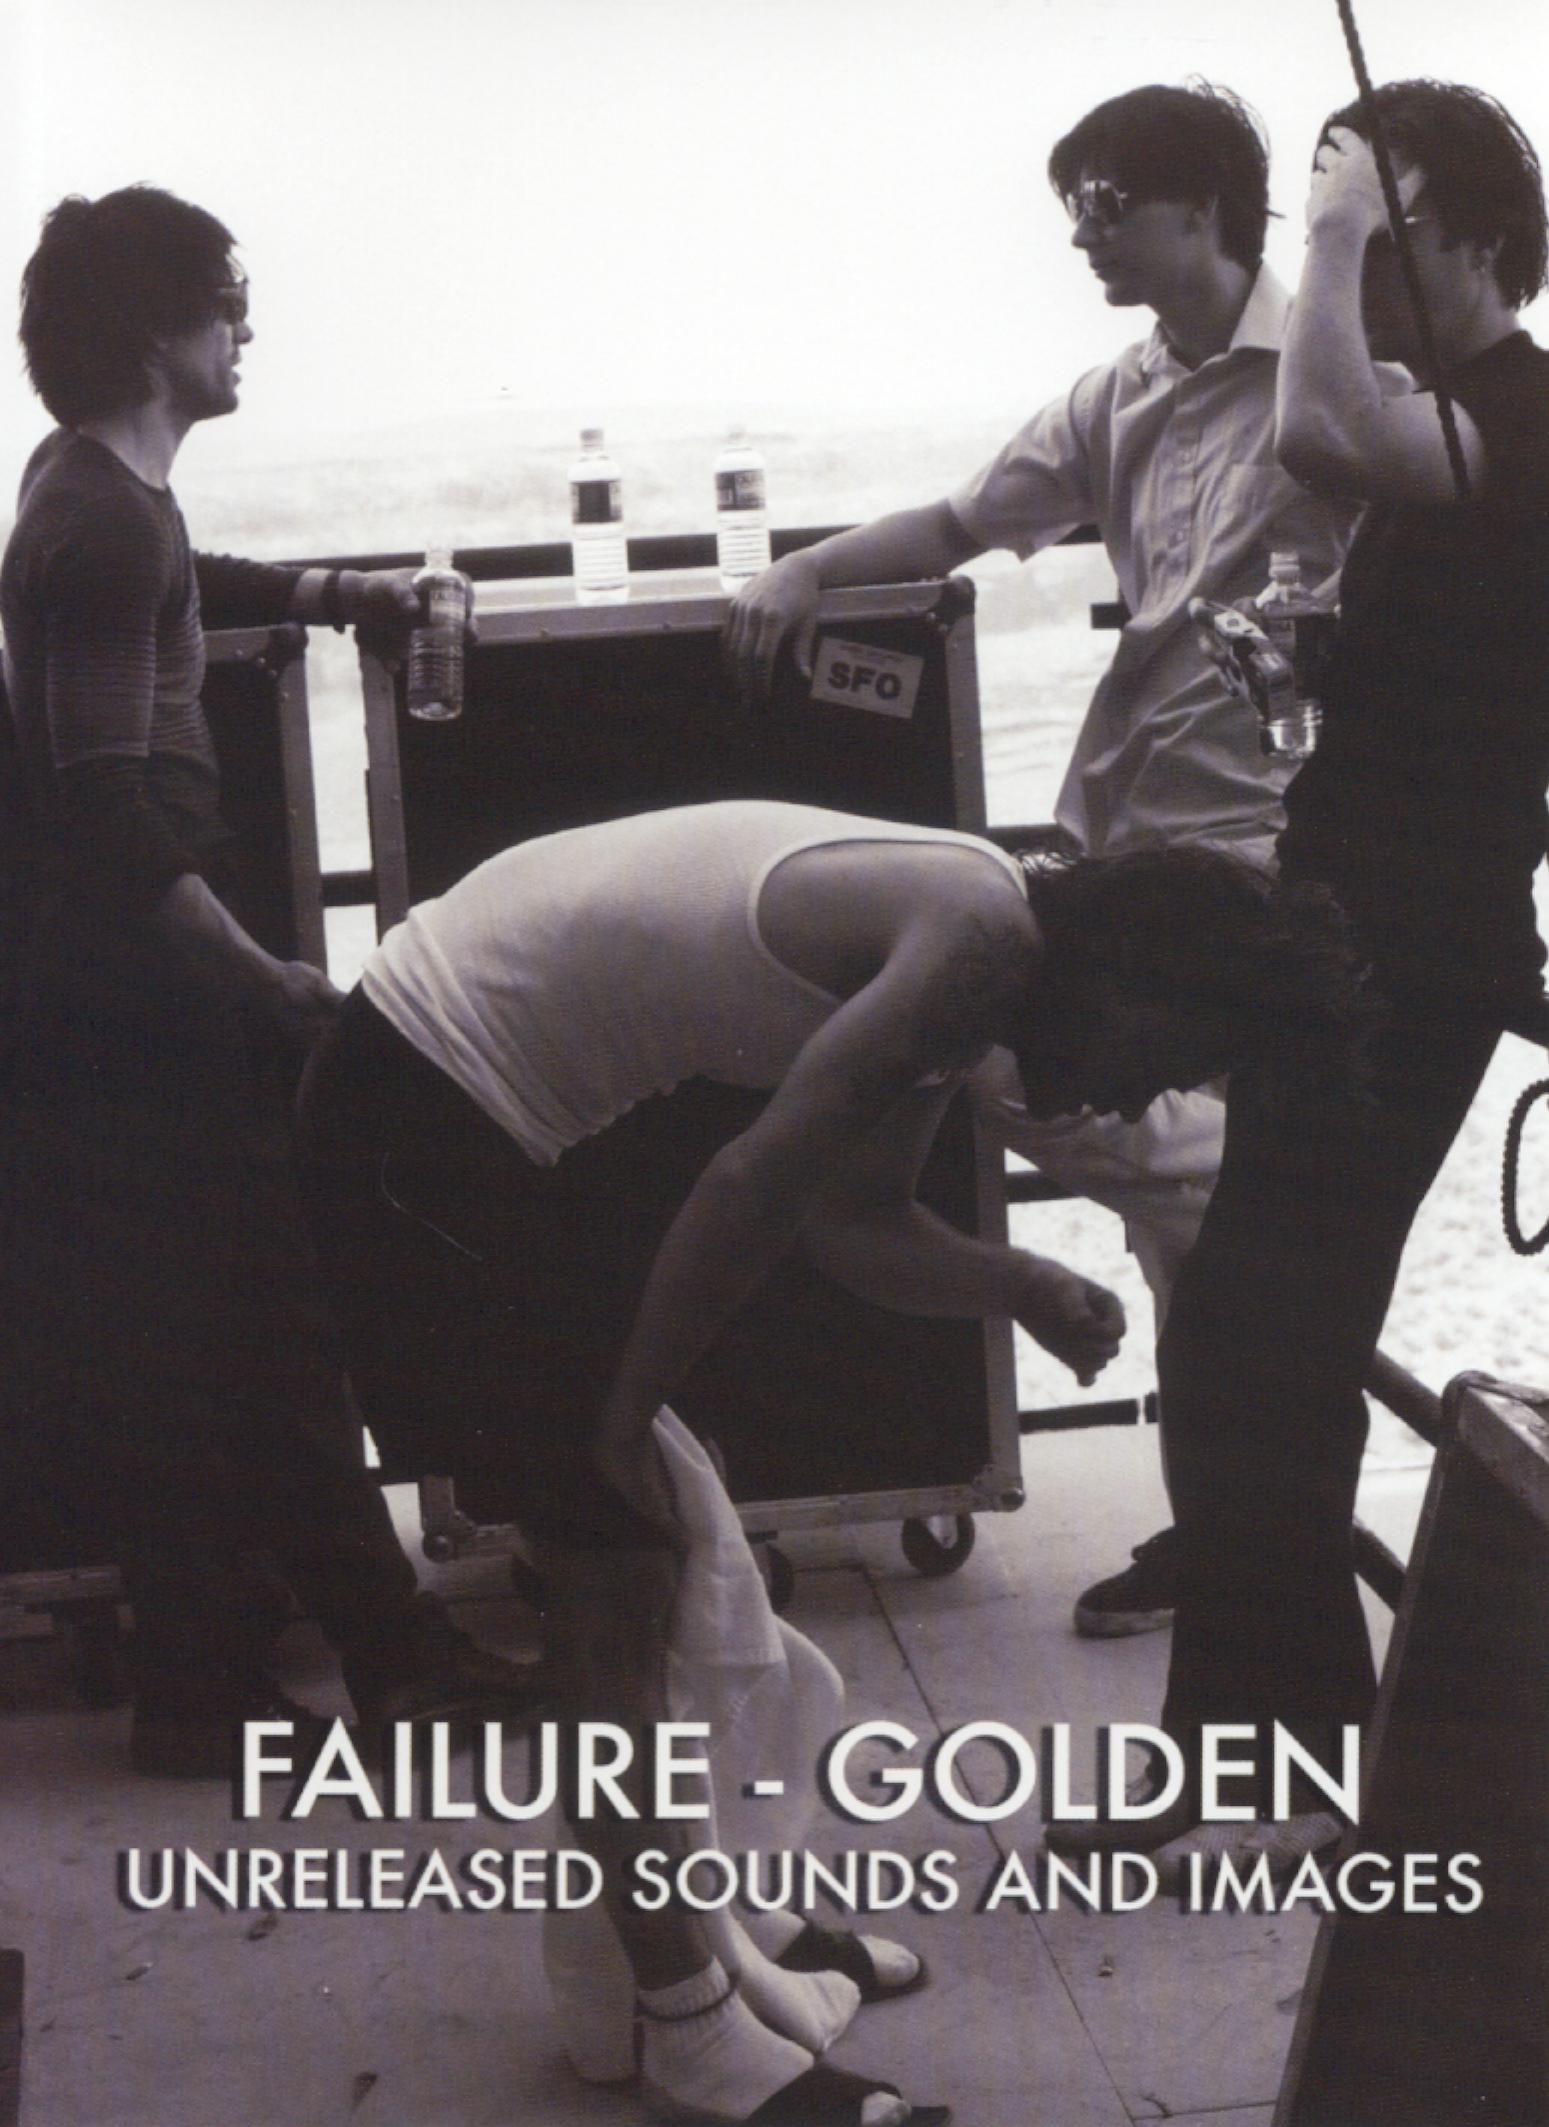 Failure: Golden - Unreleased Sounds and Images